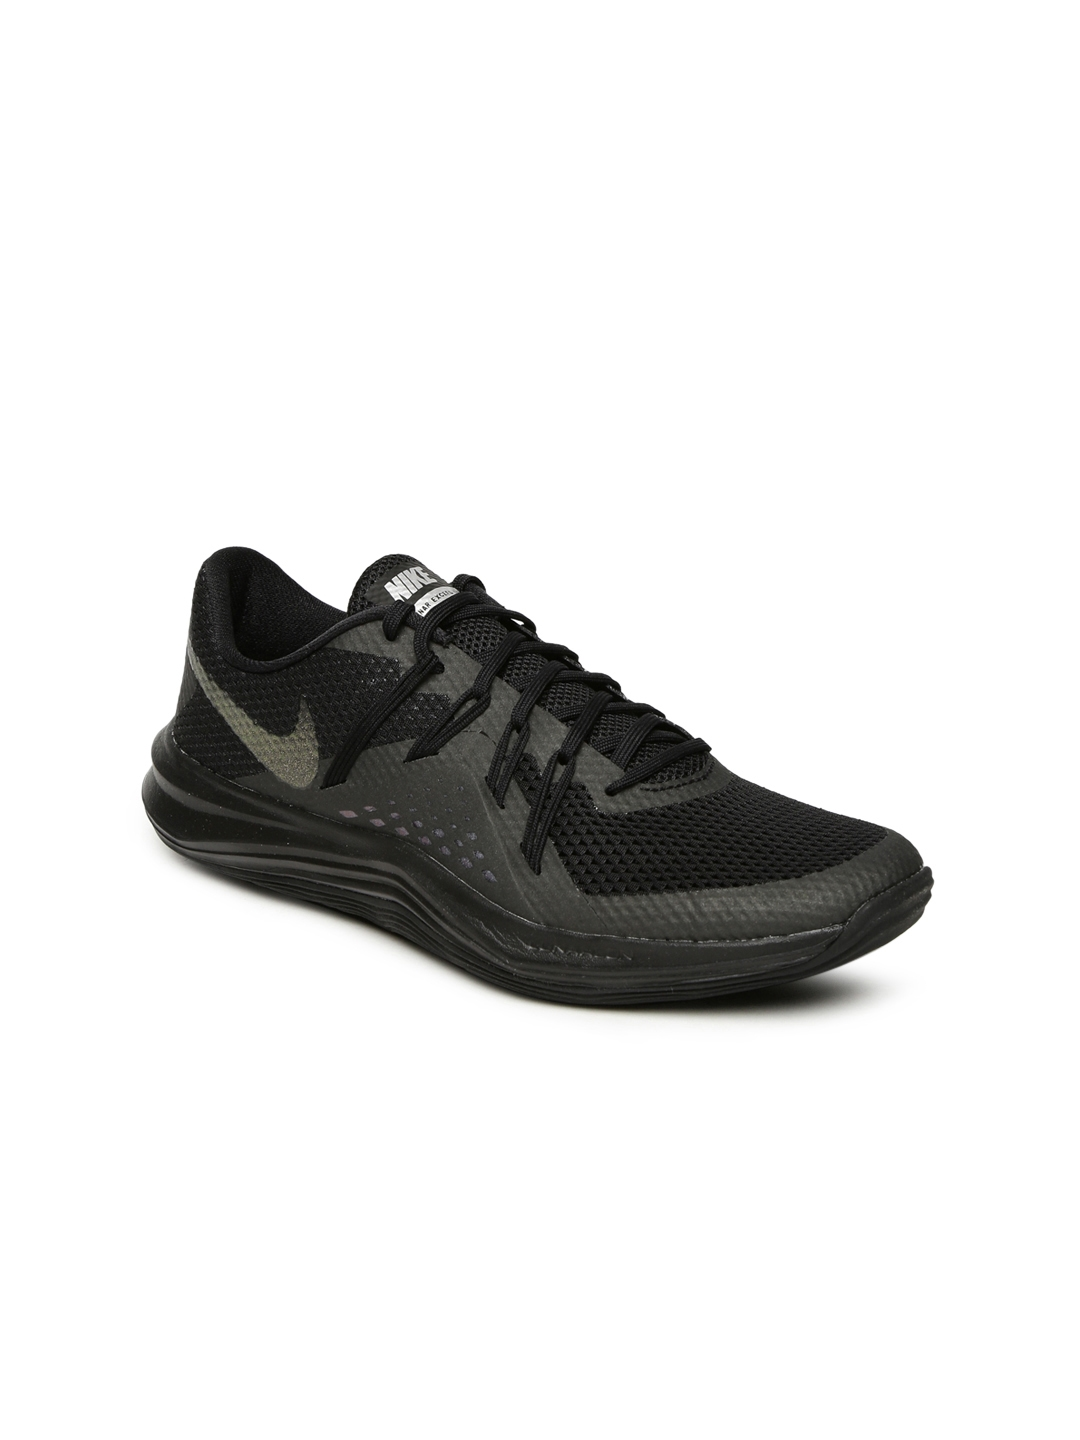 73bb53bc40b9 11507698186369-Nike -Women-Charcoal-Training-or-Gym-Shoes-7251507698186225-1.jpg